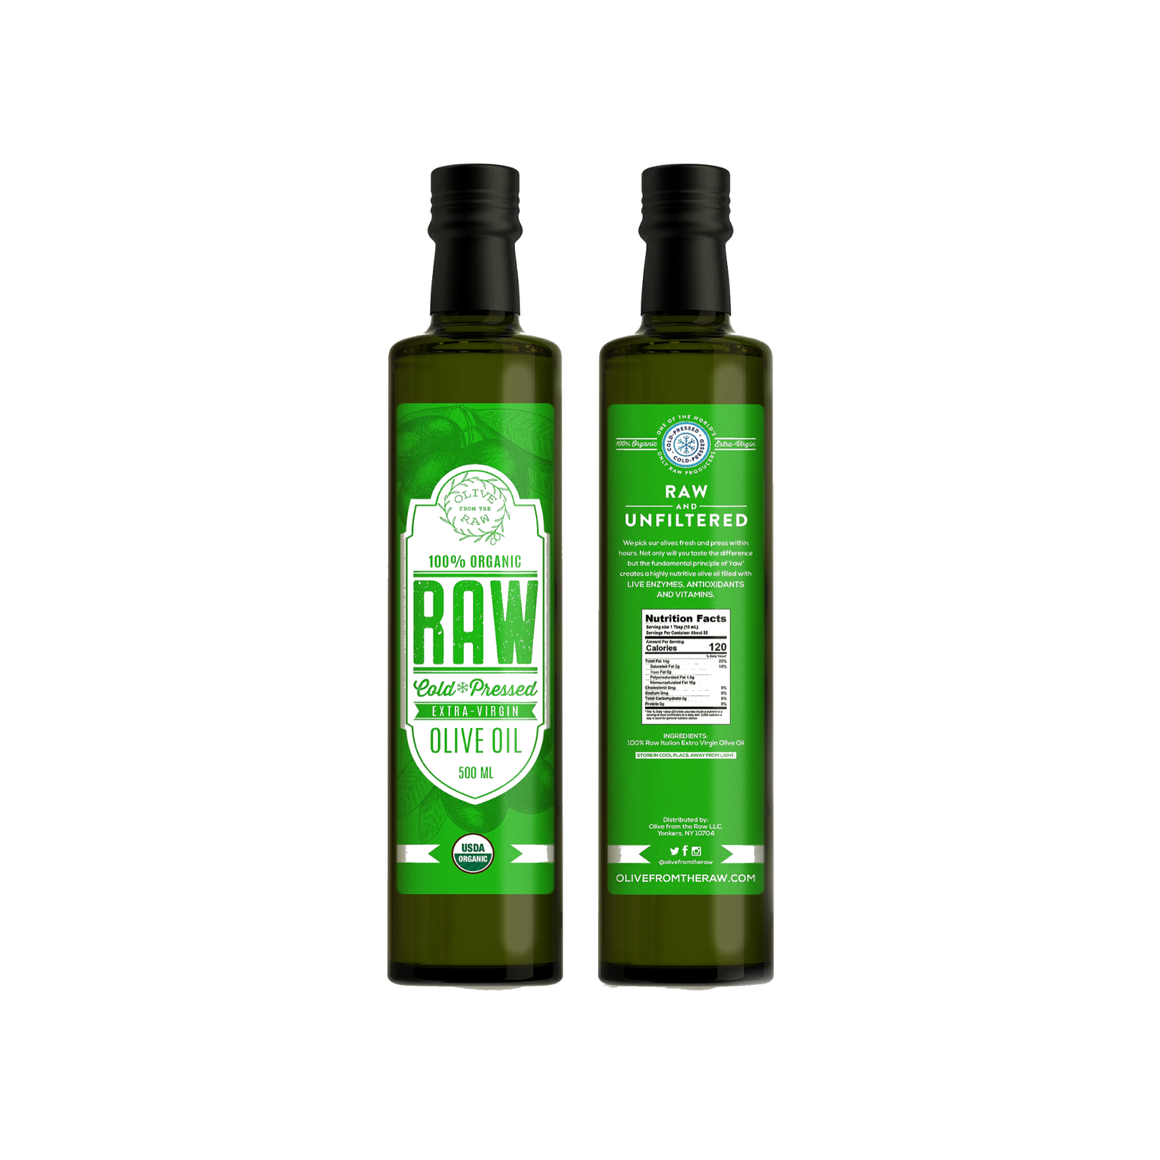 Olive From The Raw High Phenolic Organic Olive Oil (1 BOTTLE)